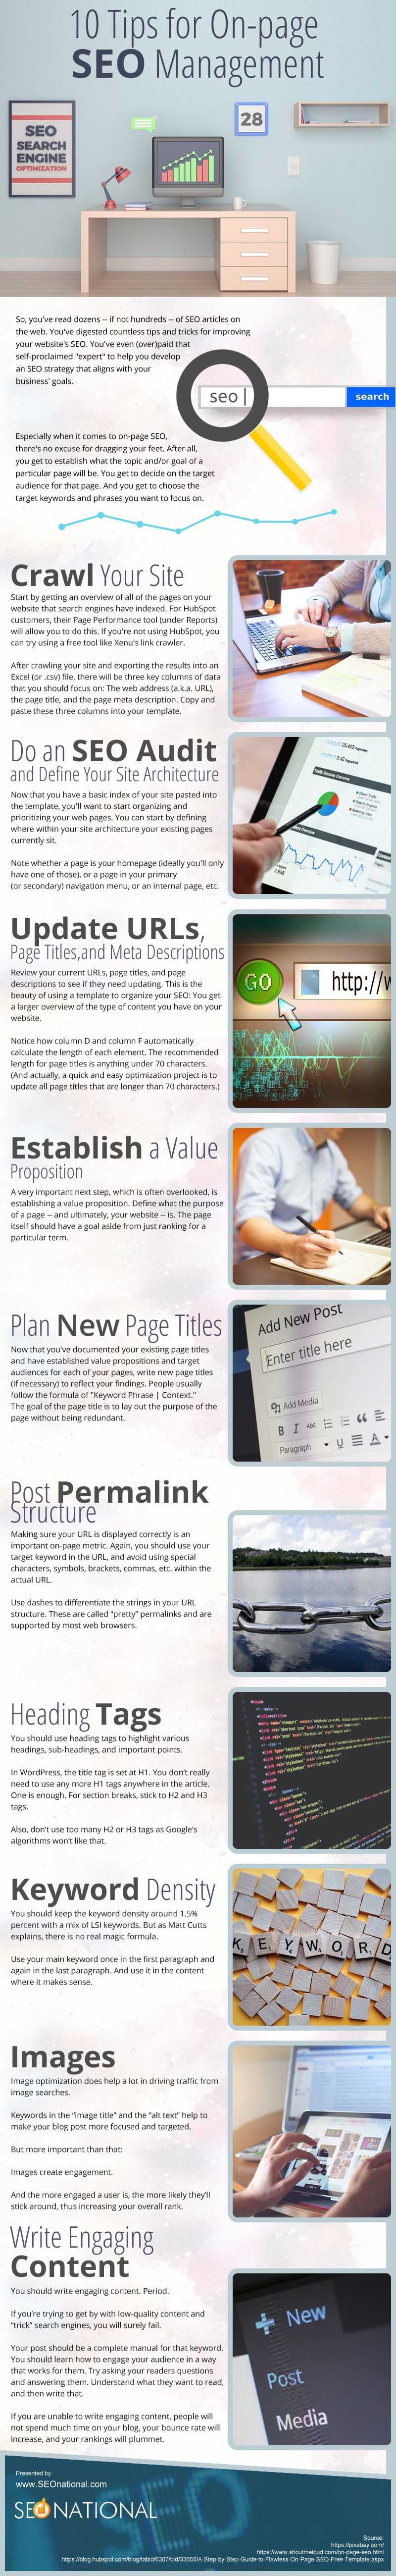 10 Tips for On-page SEO Management [infographic]